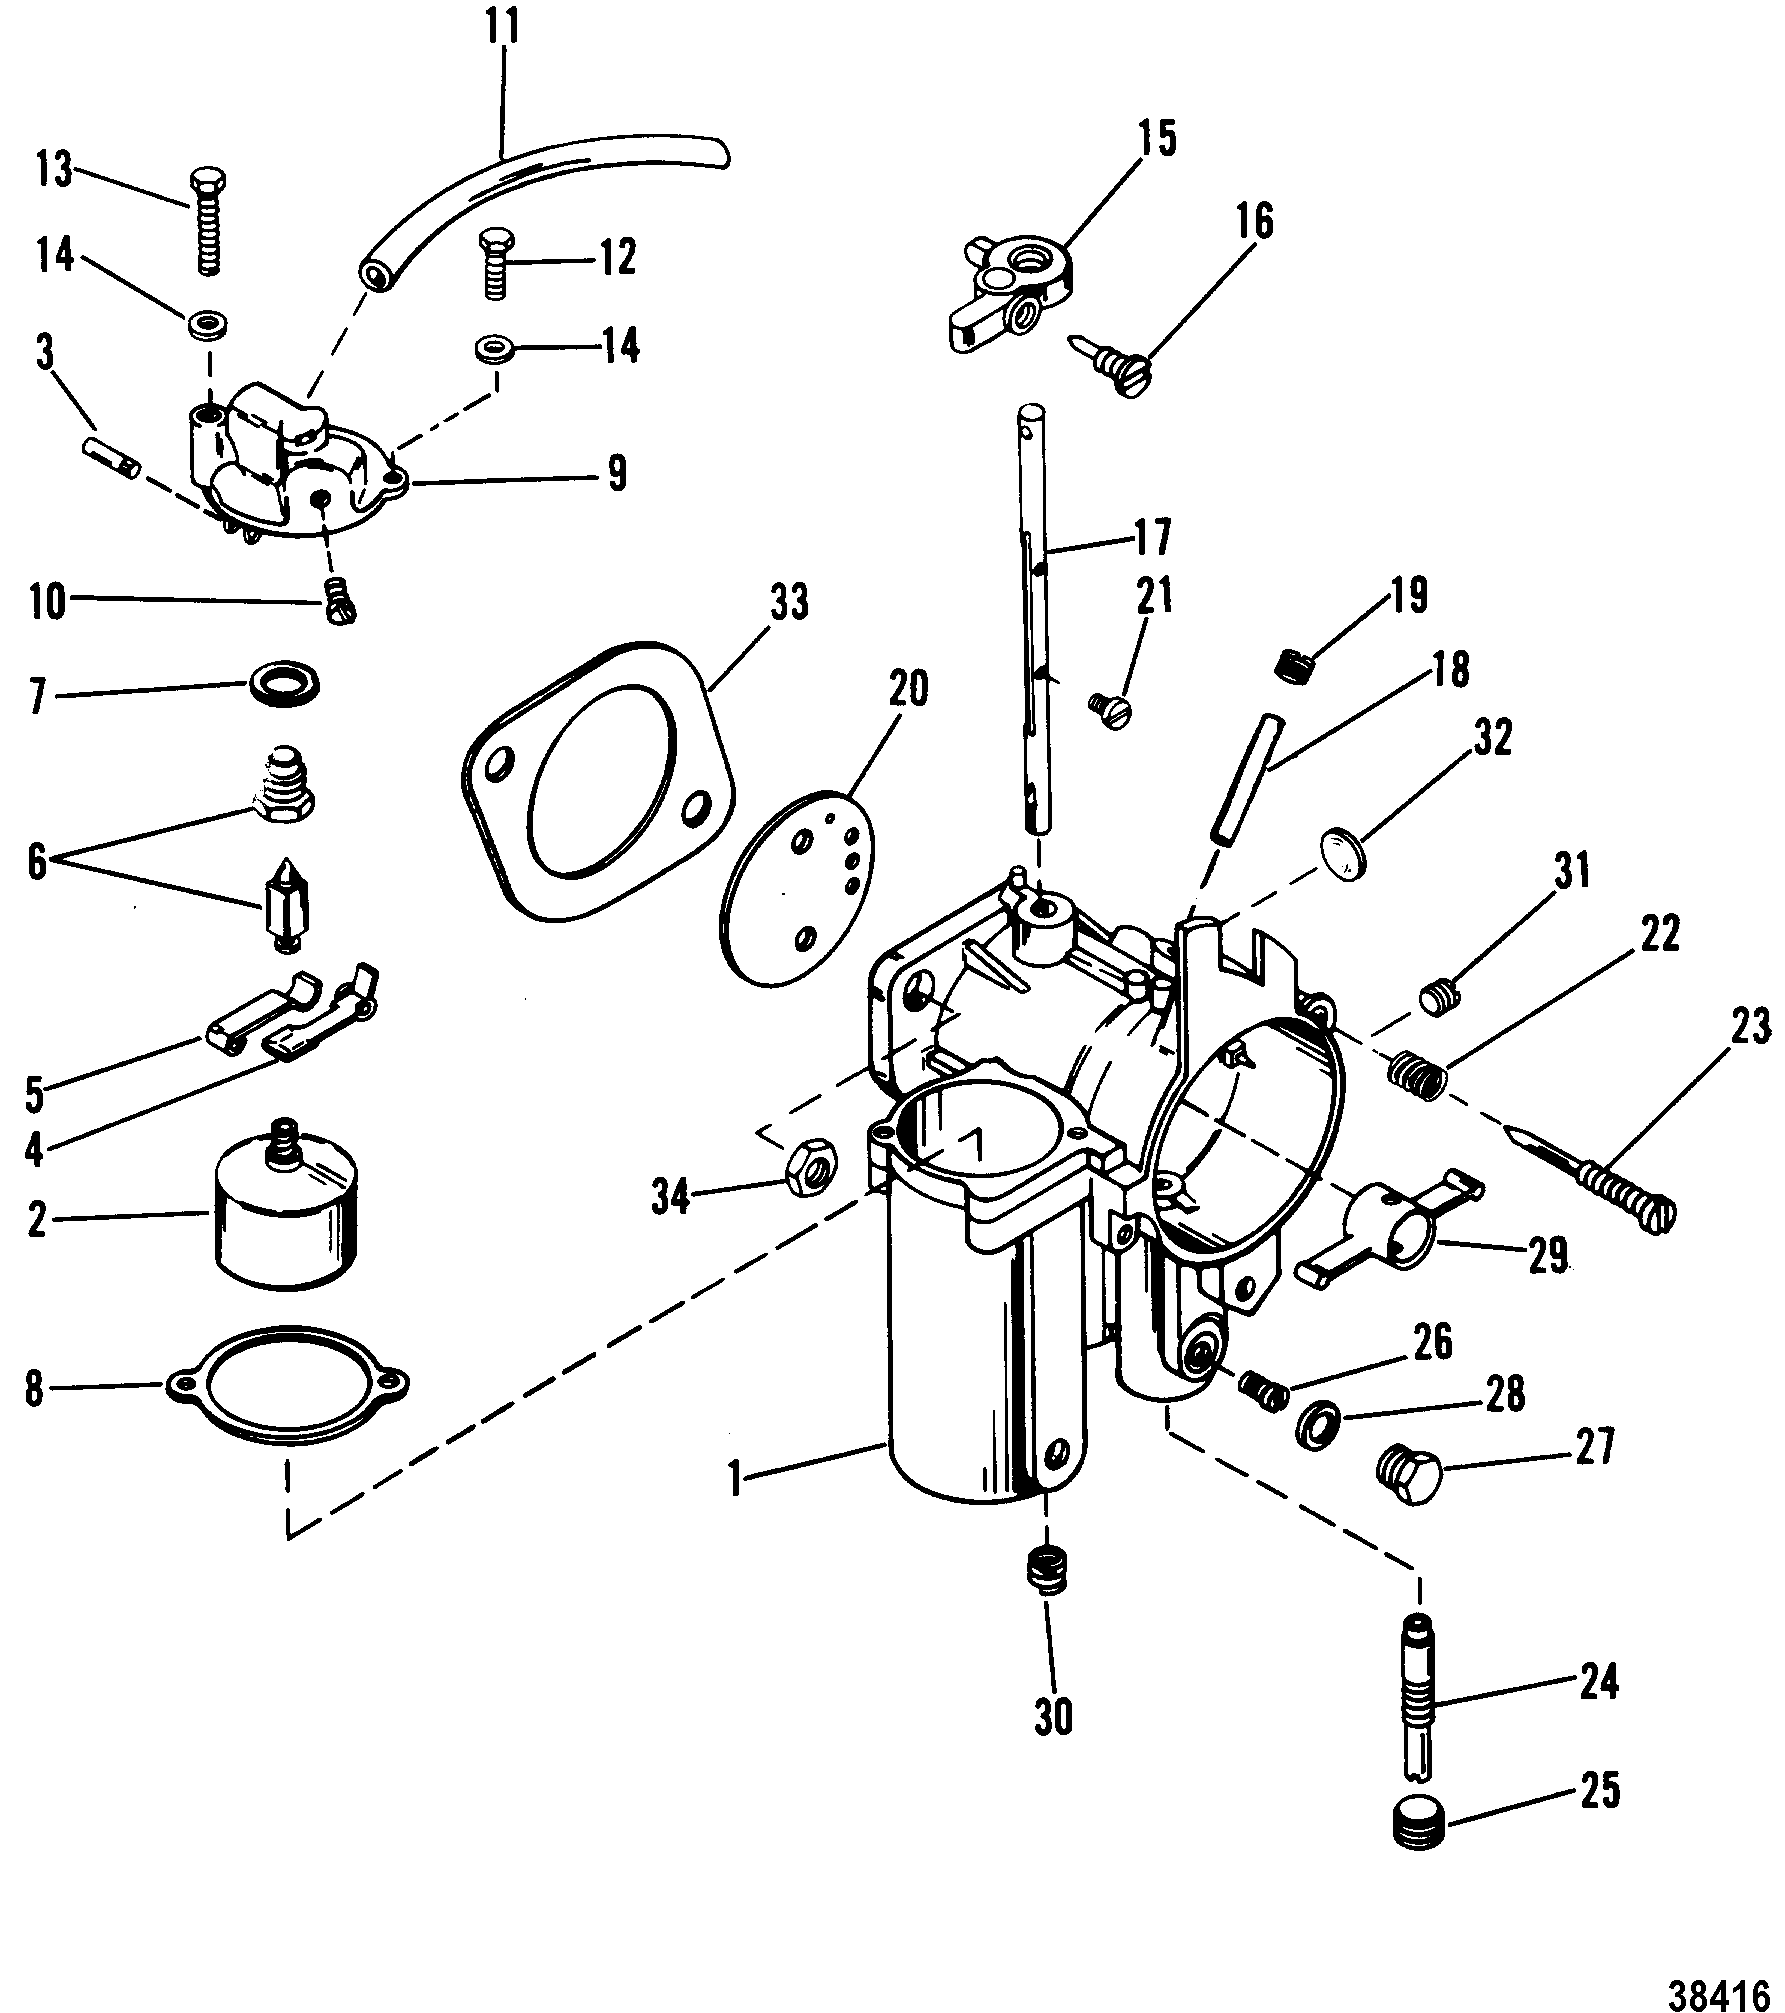 diagram together with 50 hp mercury outboard parts diagram on 90 hp